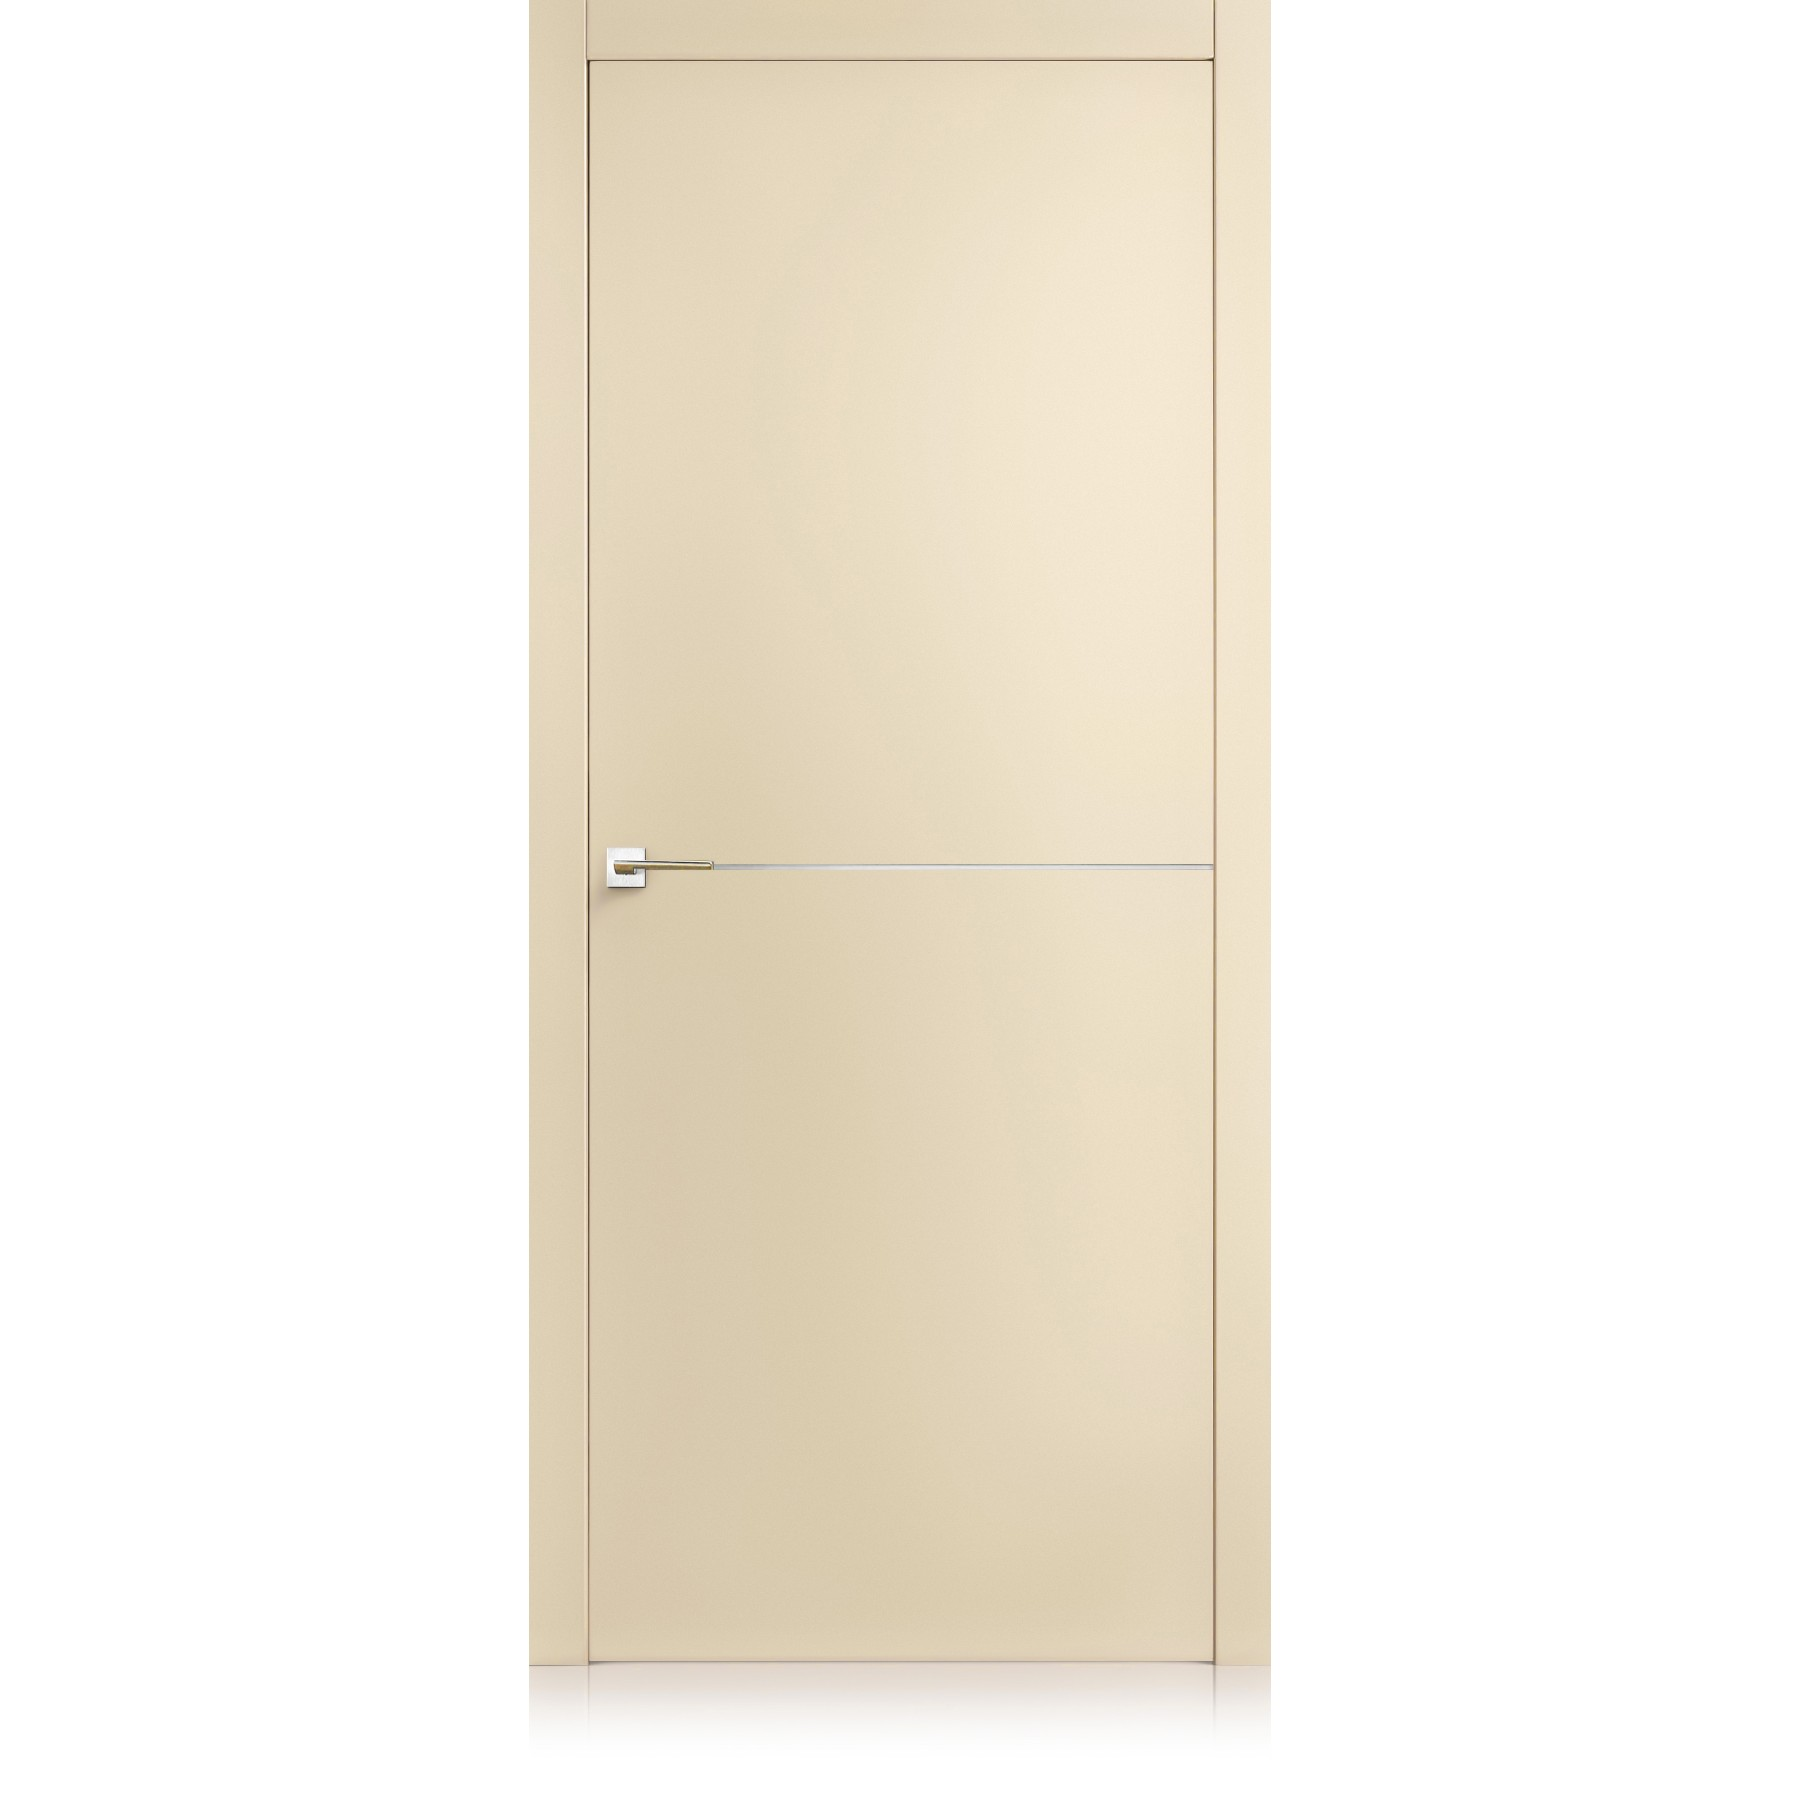 Equa / 1 cremy door